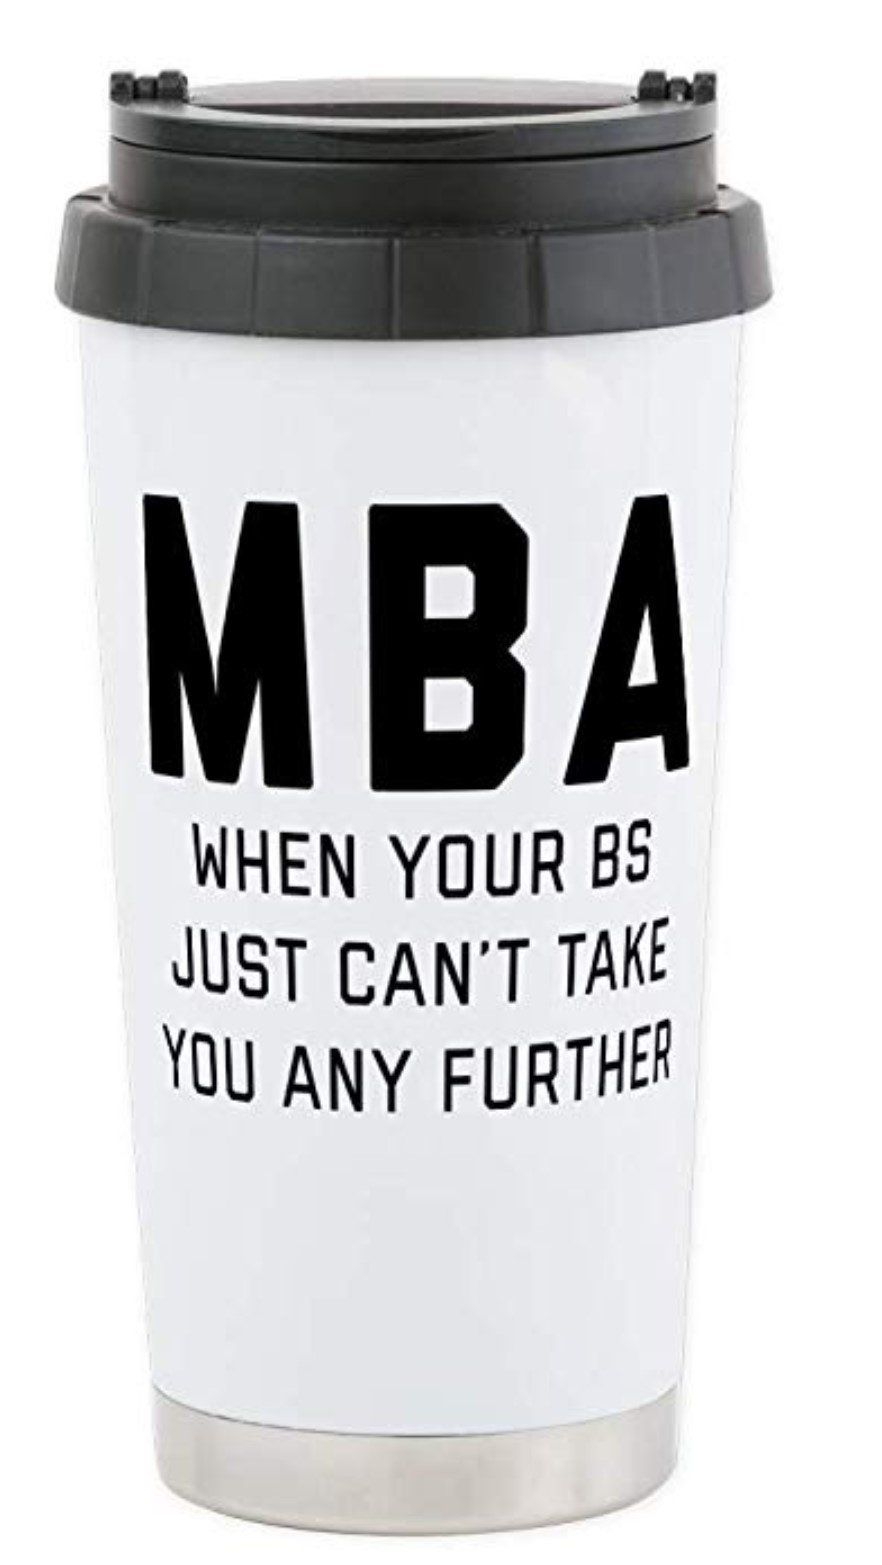 Well, maybe don't push it in too much (not much of a present, then) but the cup is needed since business majors are fueled by coffee.